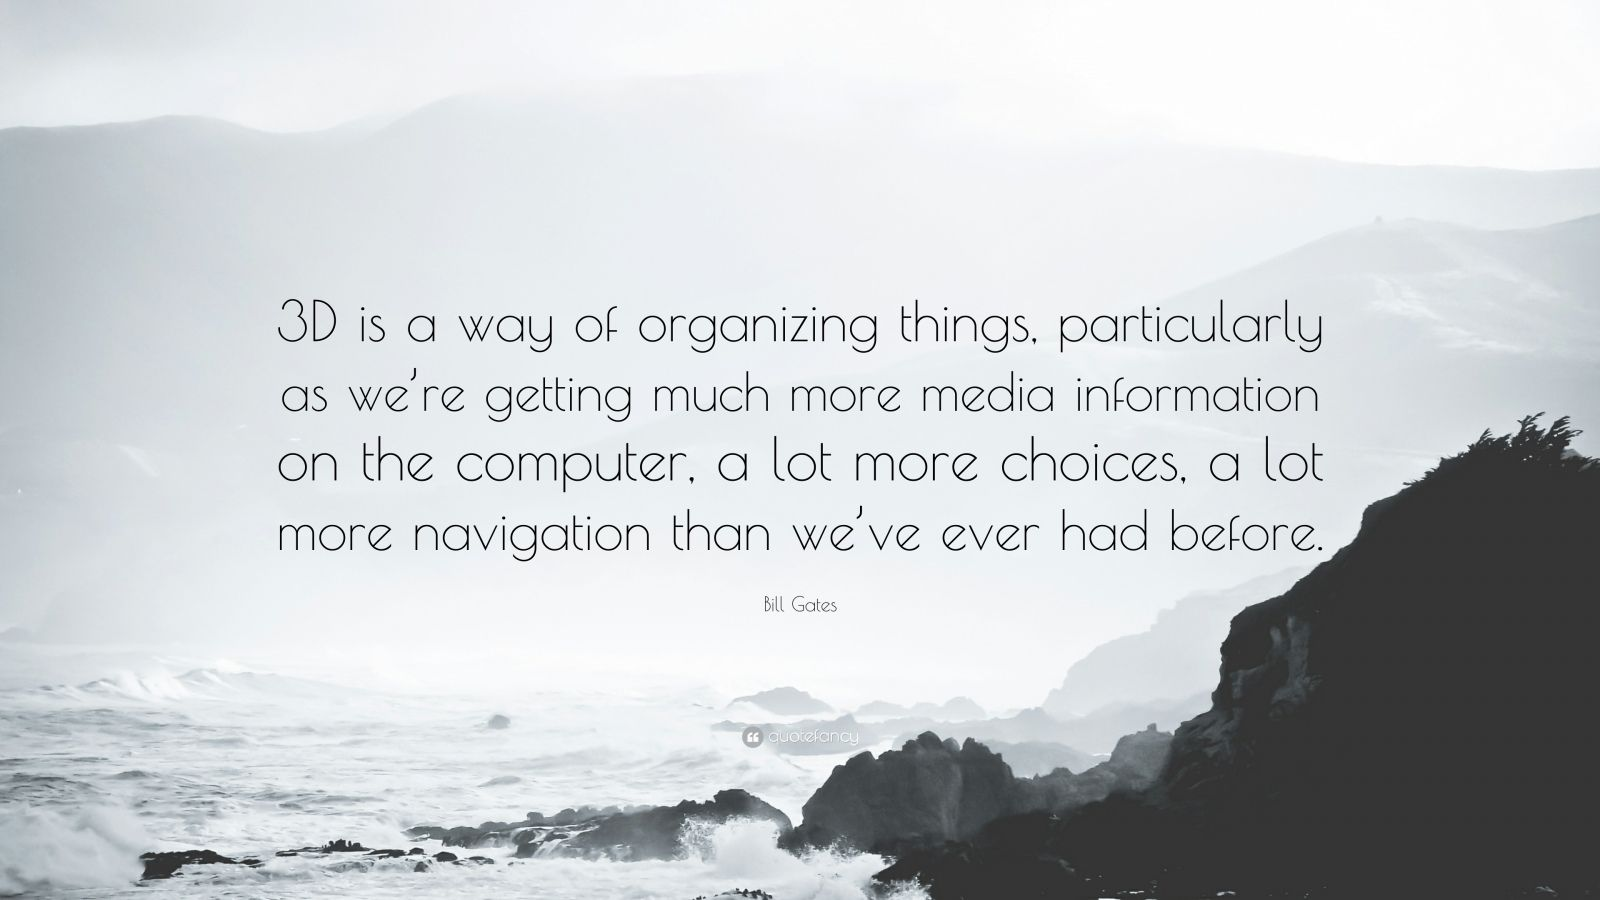 """Bill Gates Quote: """"3D is a way of organizing things, particularly as we're getting much more media information on the computer, a lot more choices, a lot more navigation than we've ever had before."""""""